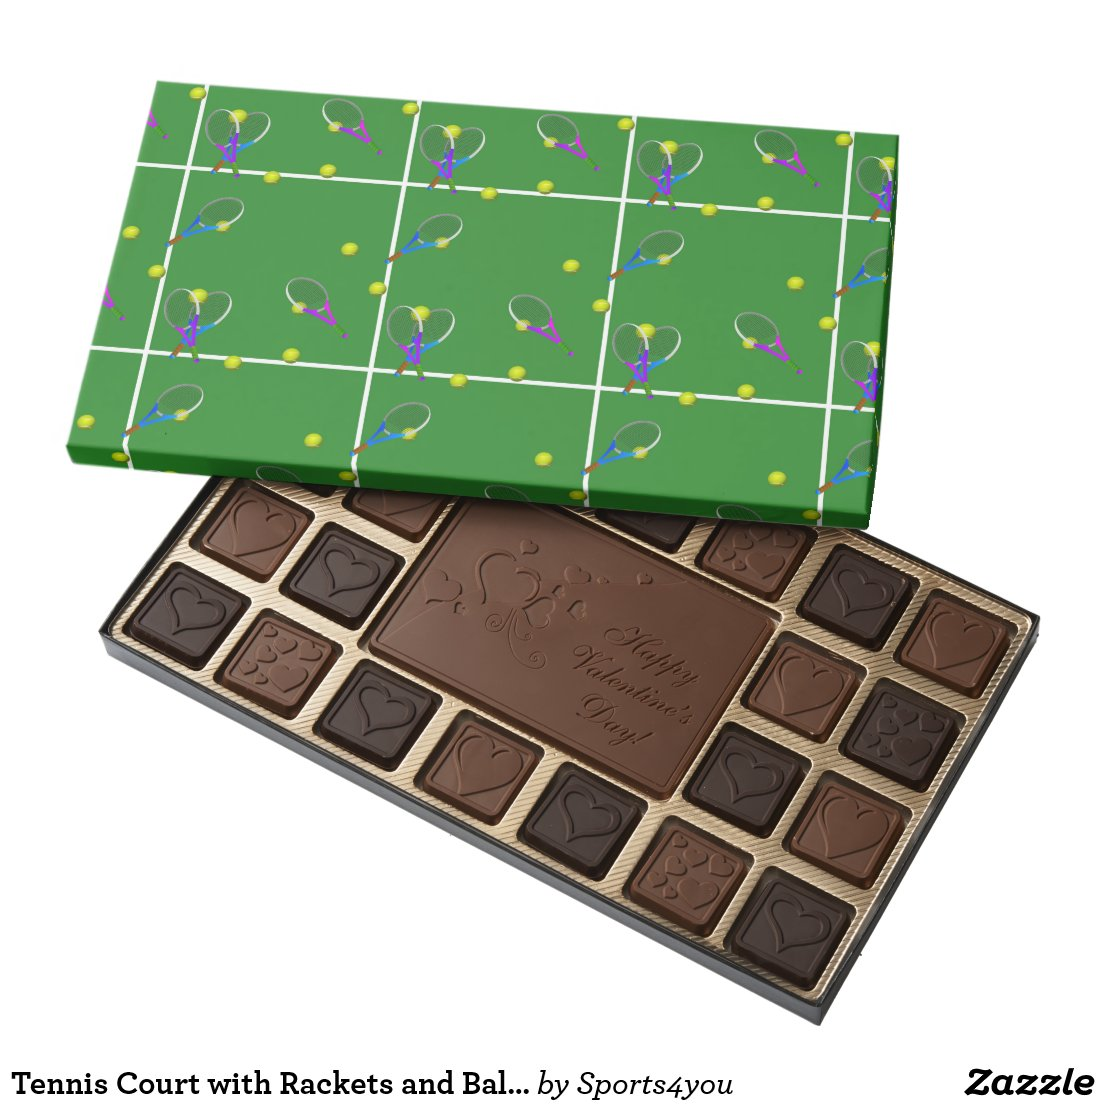 Tennis Court with Rackets and Balls Assorted Chocolates